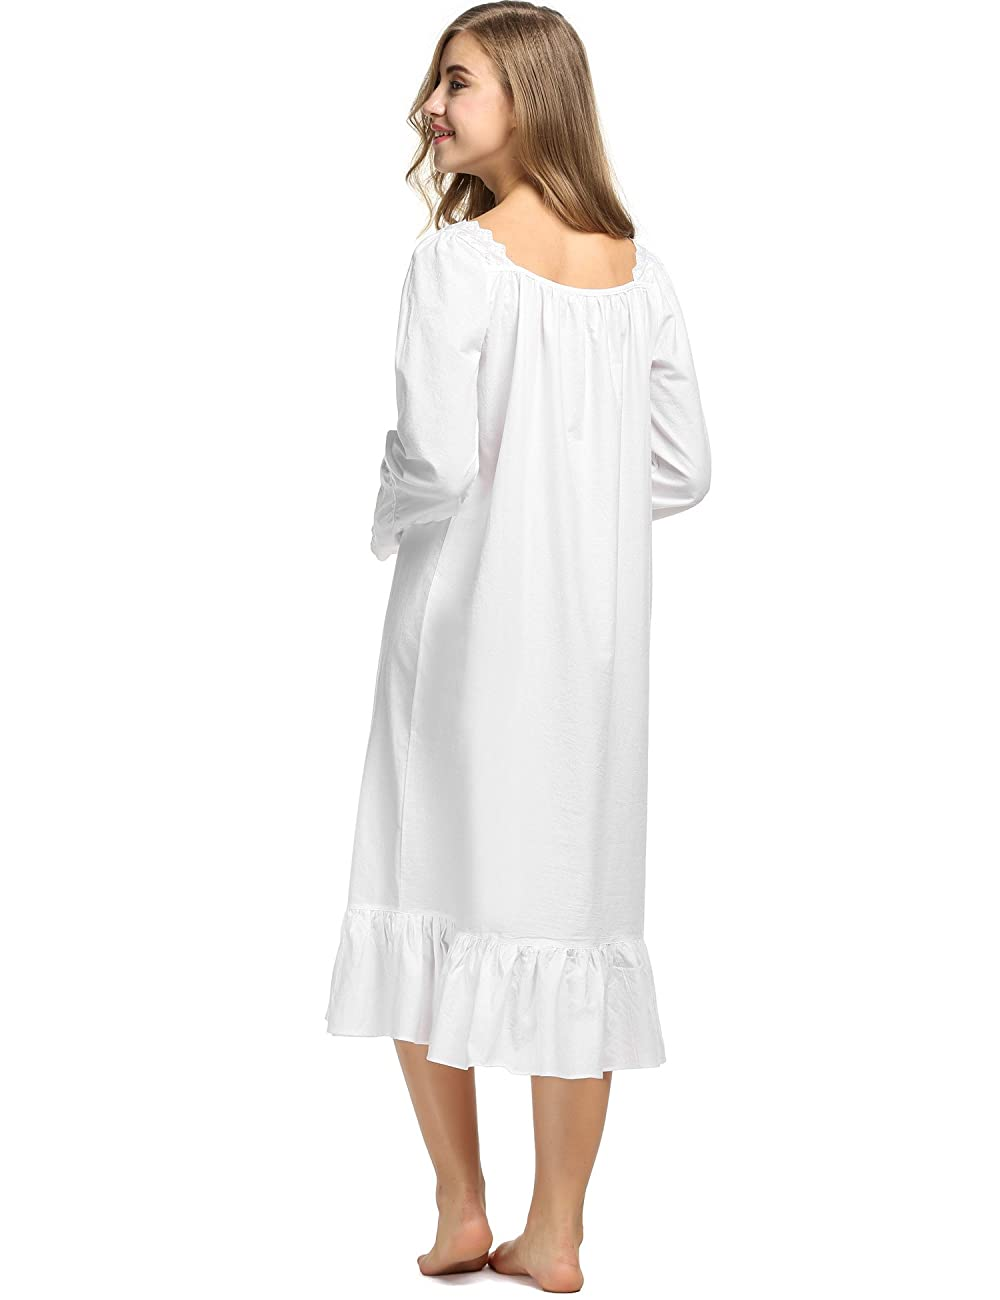 Avidlove Womens Cotton Victorian Nightgowns Romantic Long Bell Sleeve Nightshirt 4